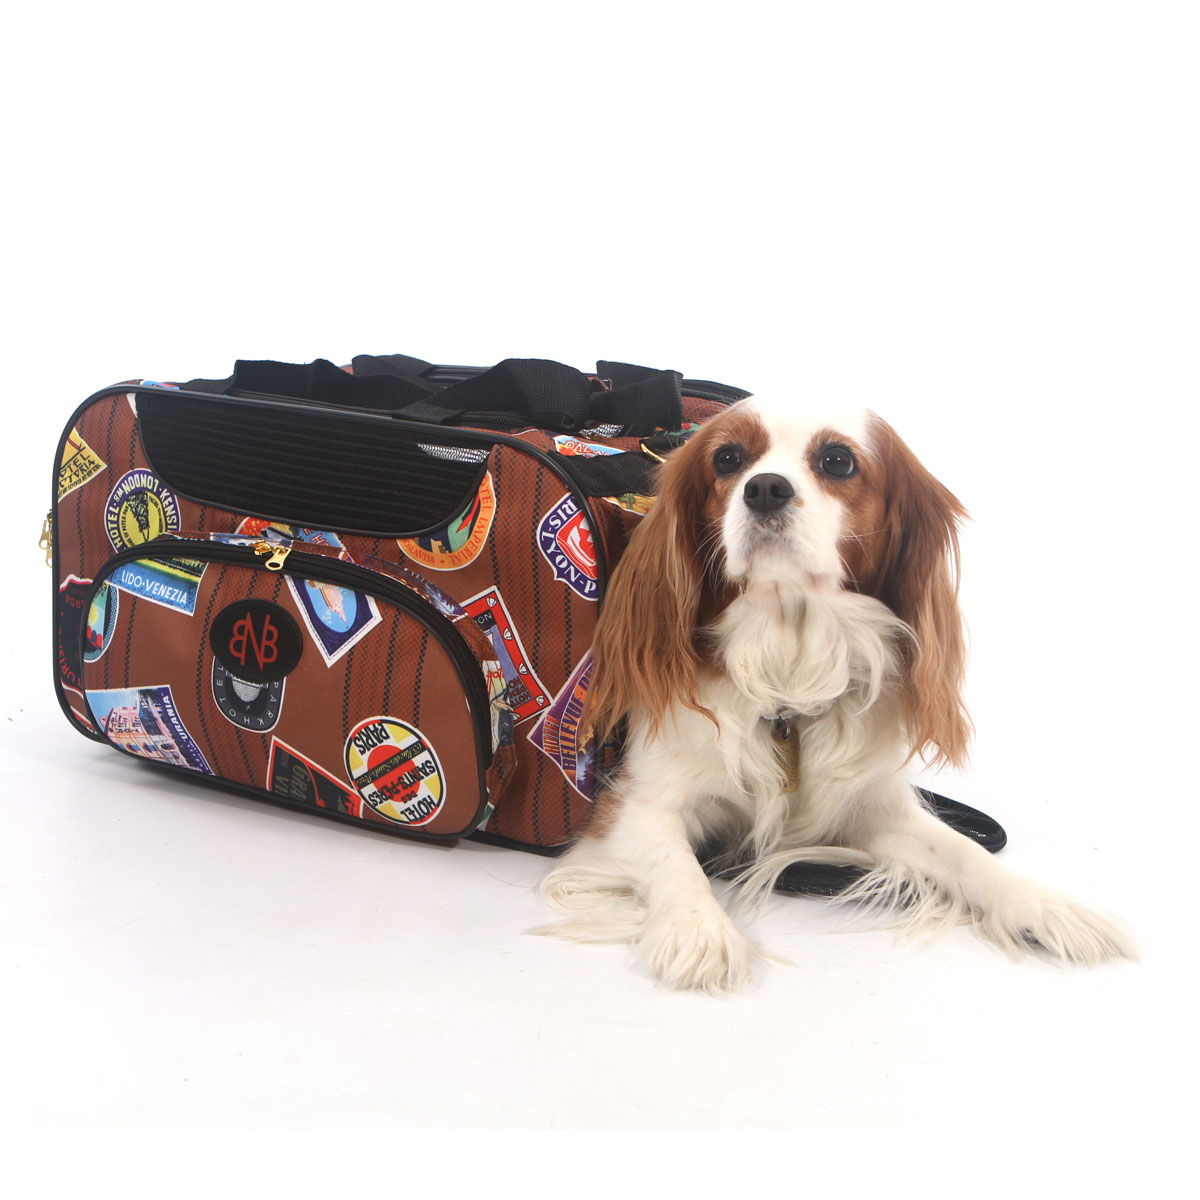 The Perfect Man Bag Travel Bags For Dogs